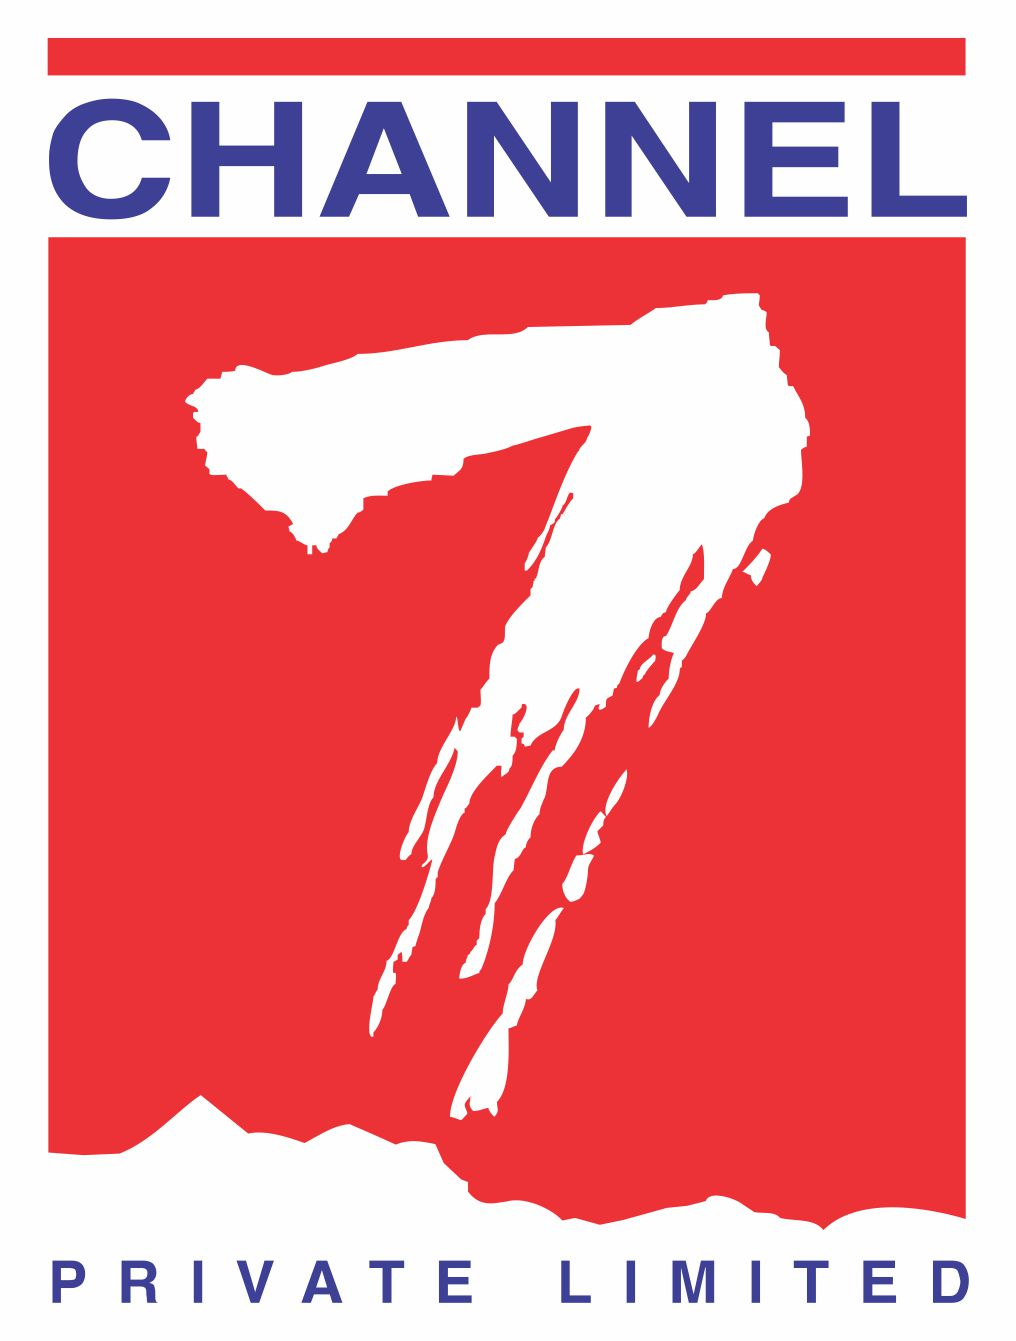 Channel 7 Communications